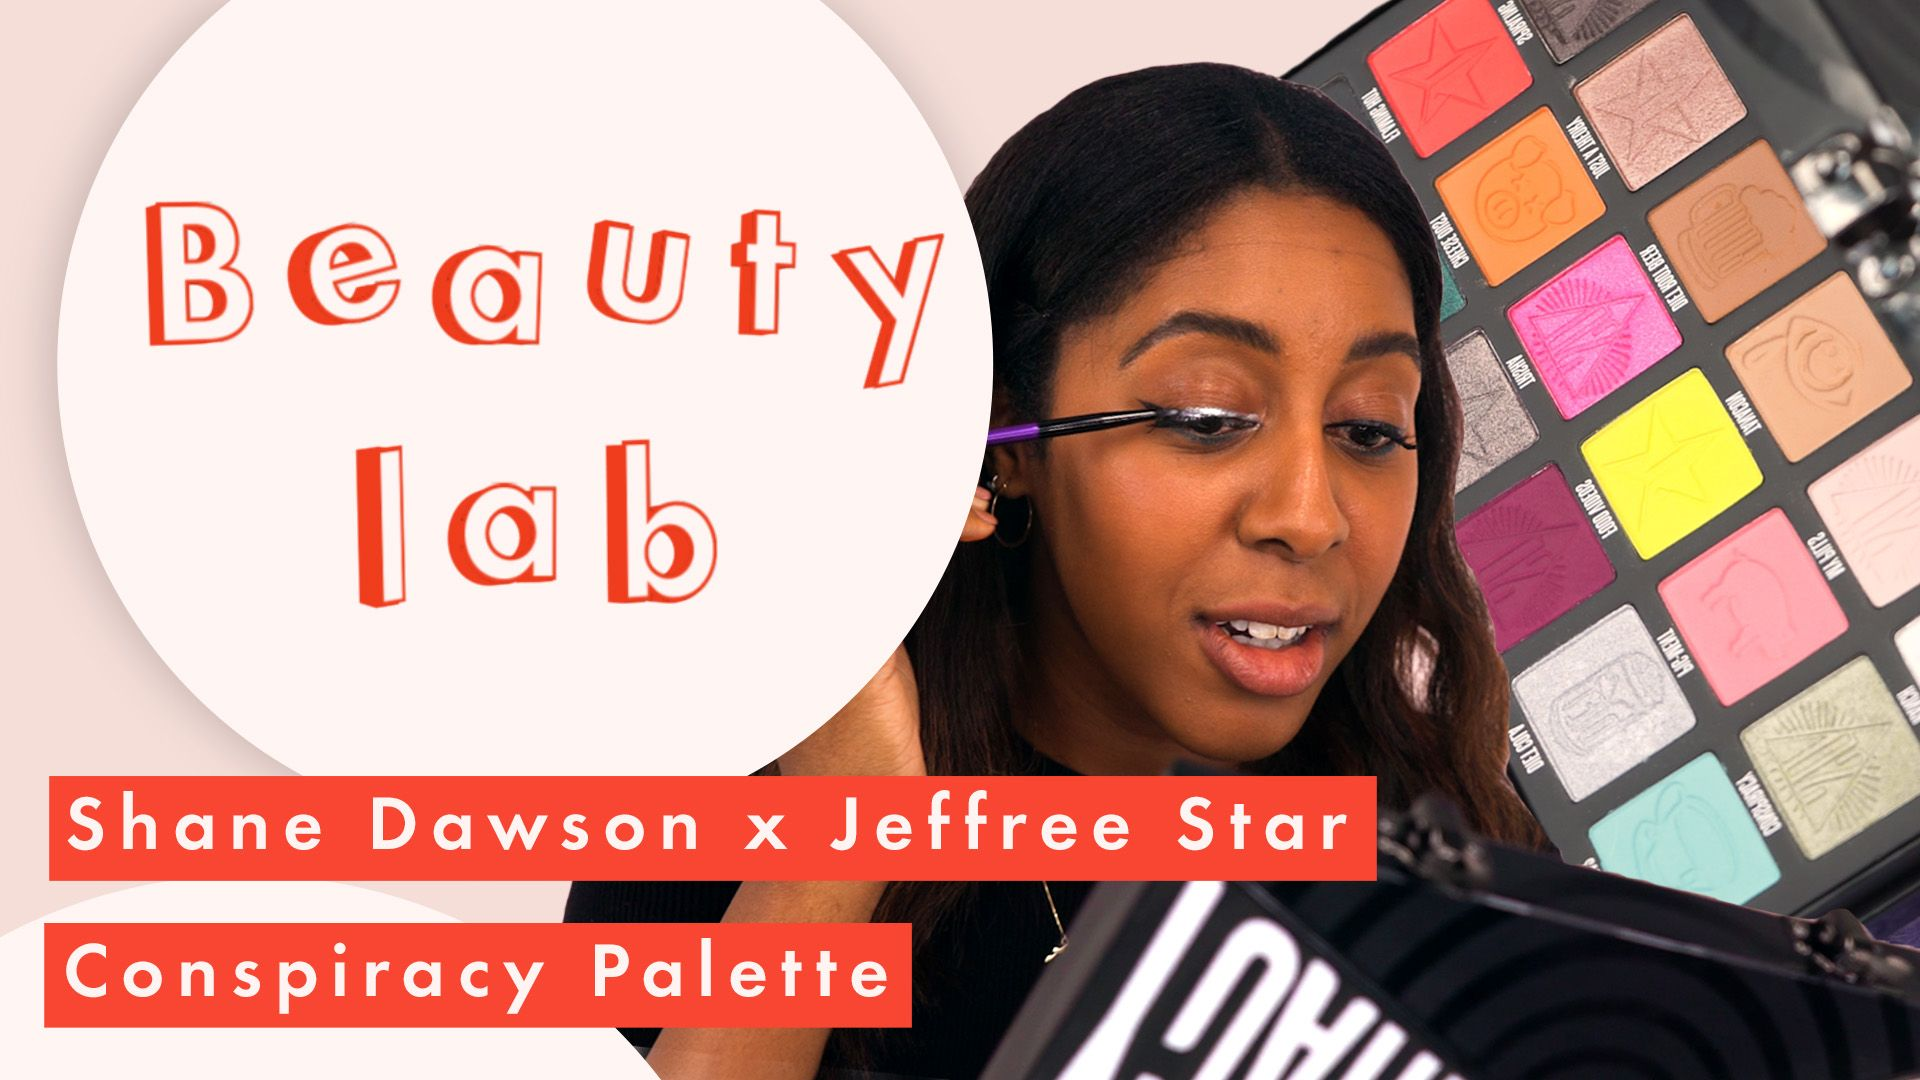 The Shane Dawson x Jeffree Star Conspiracy palette is finally here, so we put it to the test...